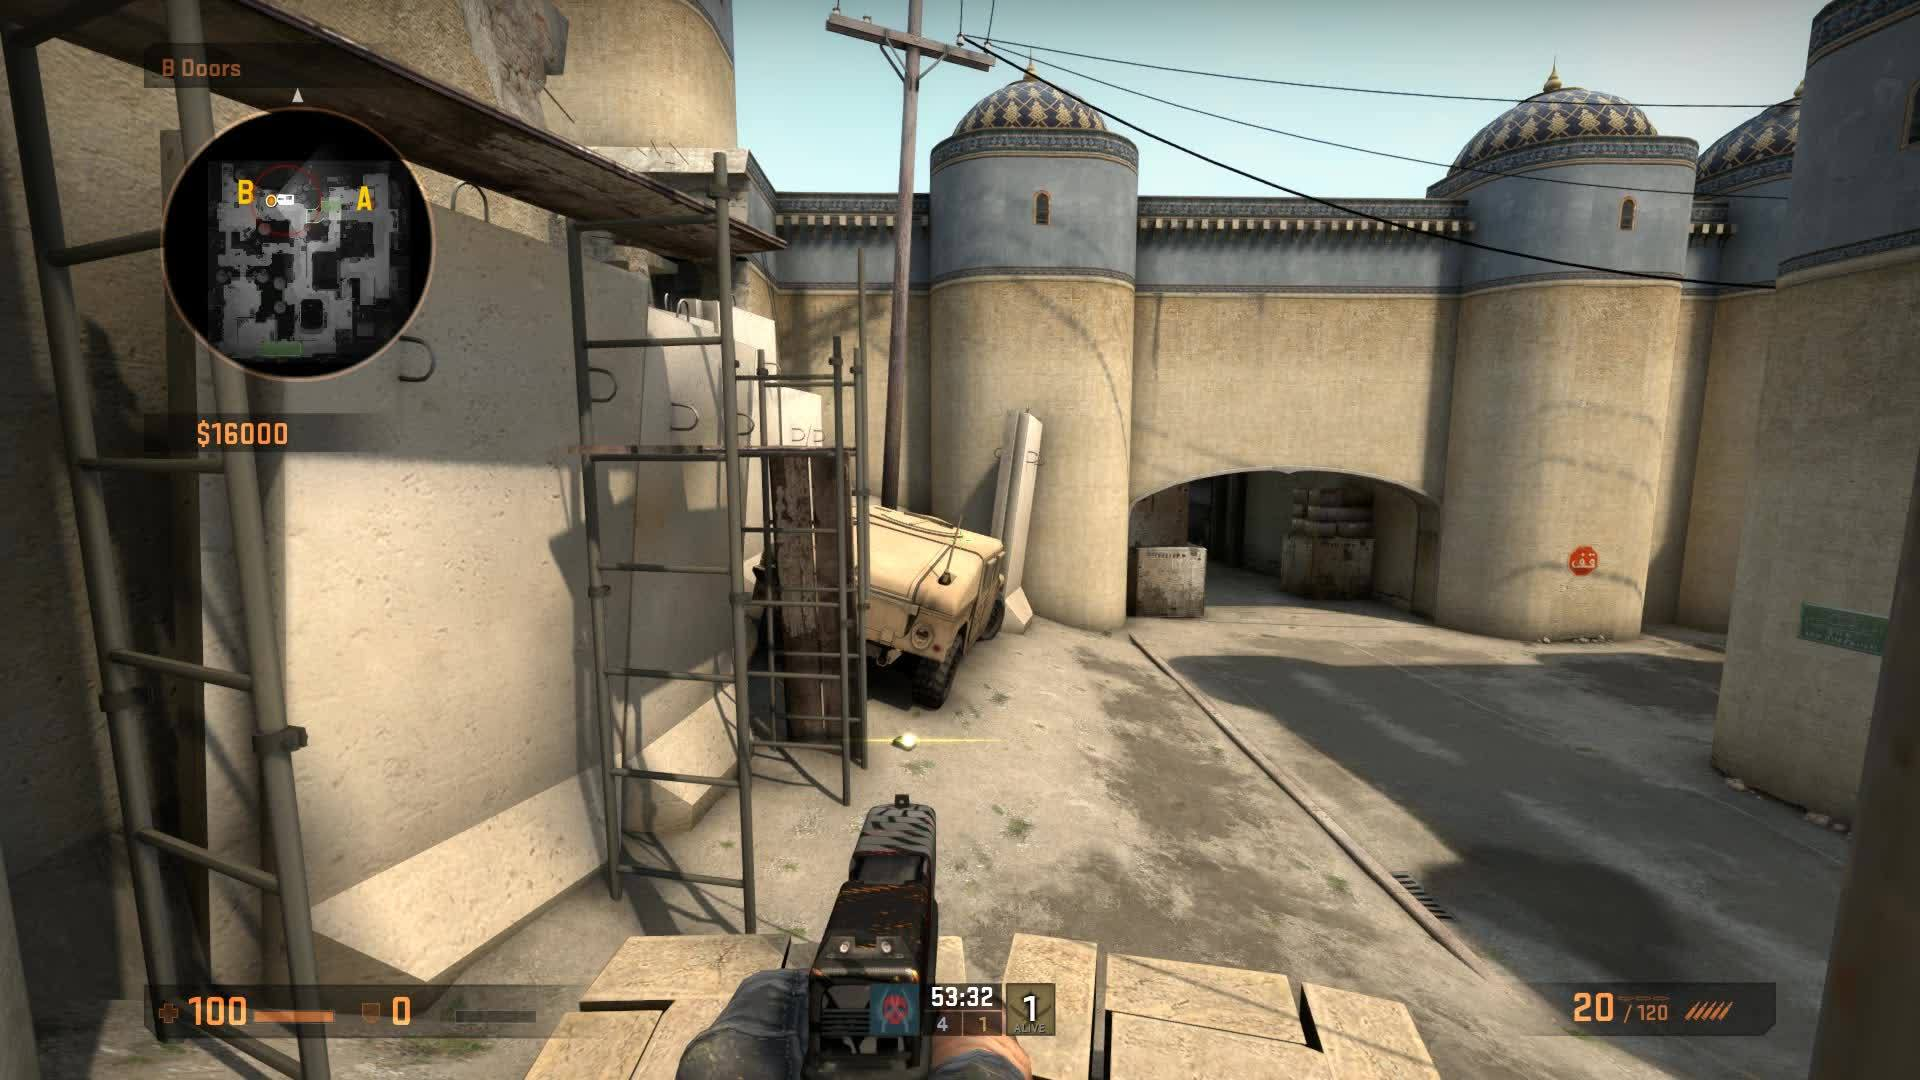 globaloffensive, sv_cheats 1;mat_ambient_light_r -1.5;mat_ambient_light_g -1.5;mat_ambient_light_b -1.5;cl_draw_only_deathnotices 1;crosshair 0 GIFs